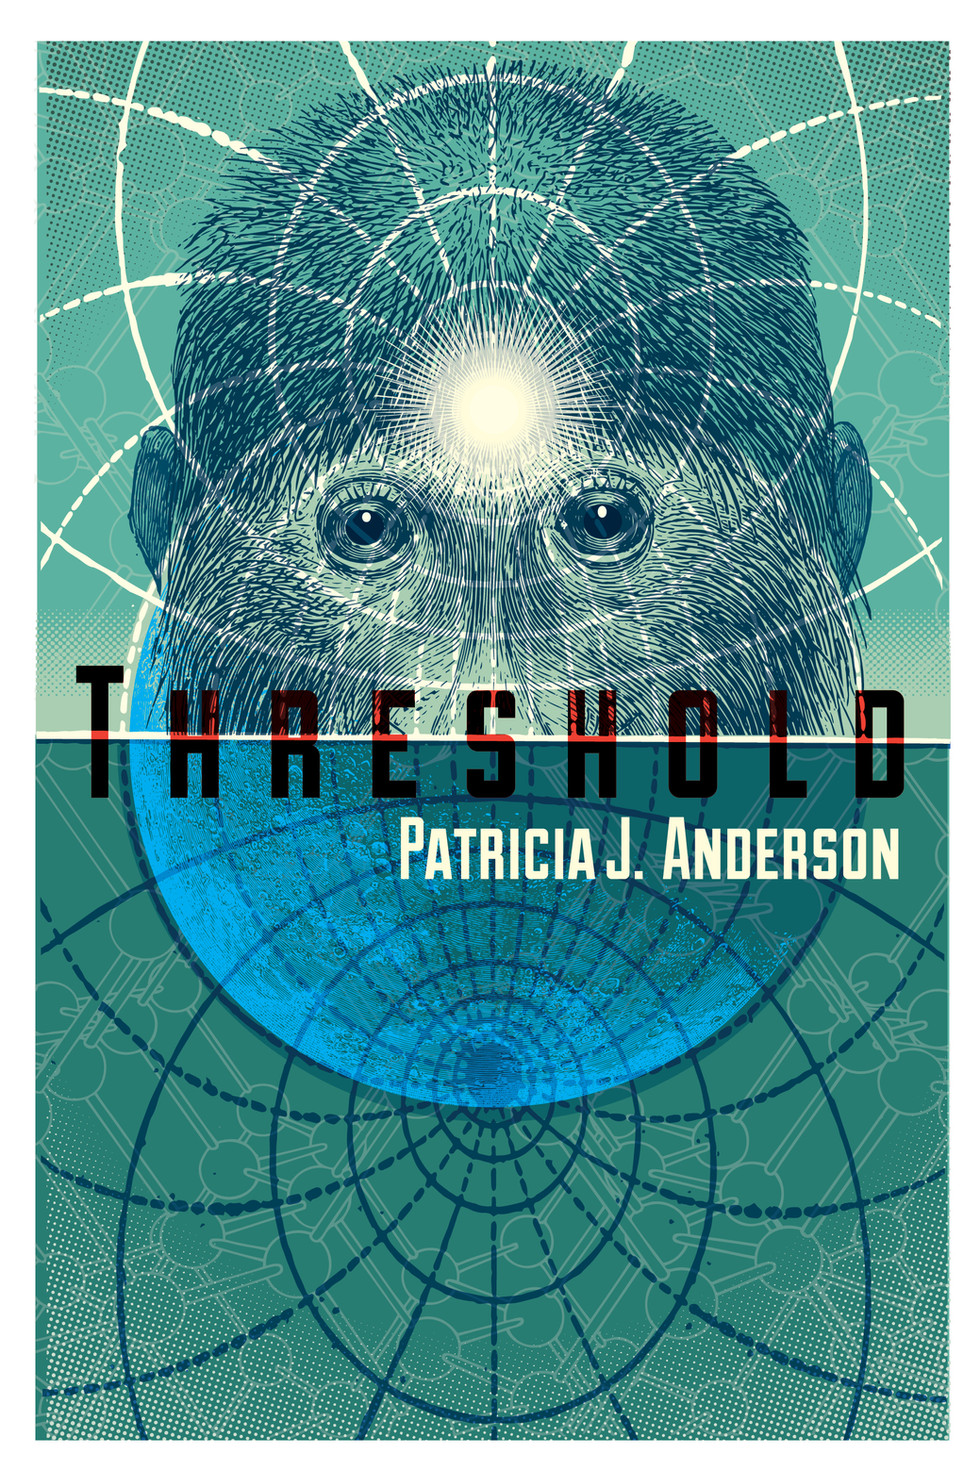 Patricia J. Anderson interviewed by Eco-Fiction